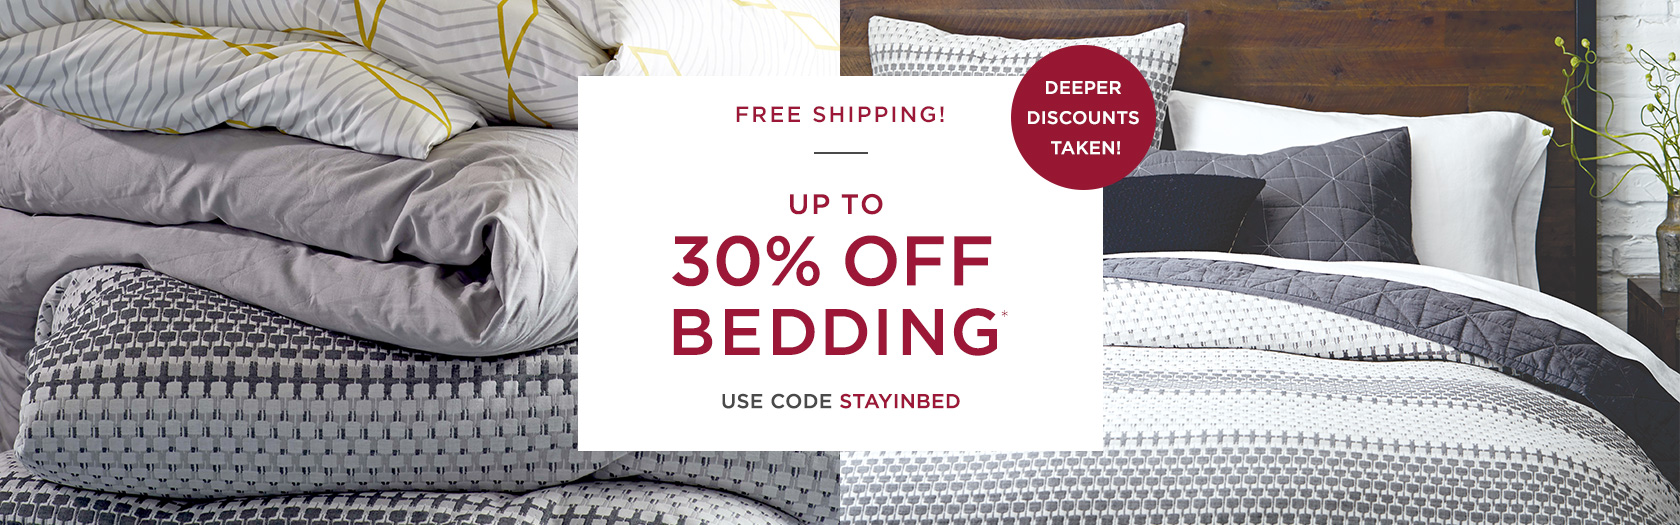 Up To 30 Percent Off Bedding + Free Shipping - Use Code STAYINBED